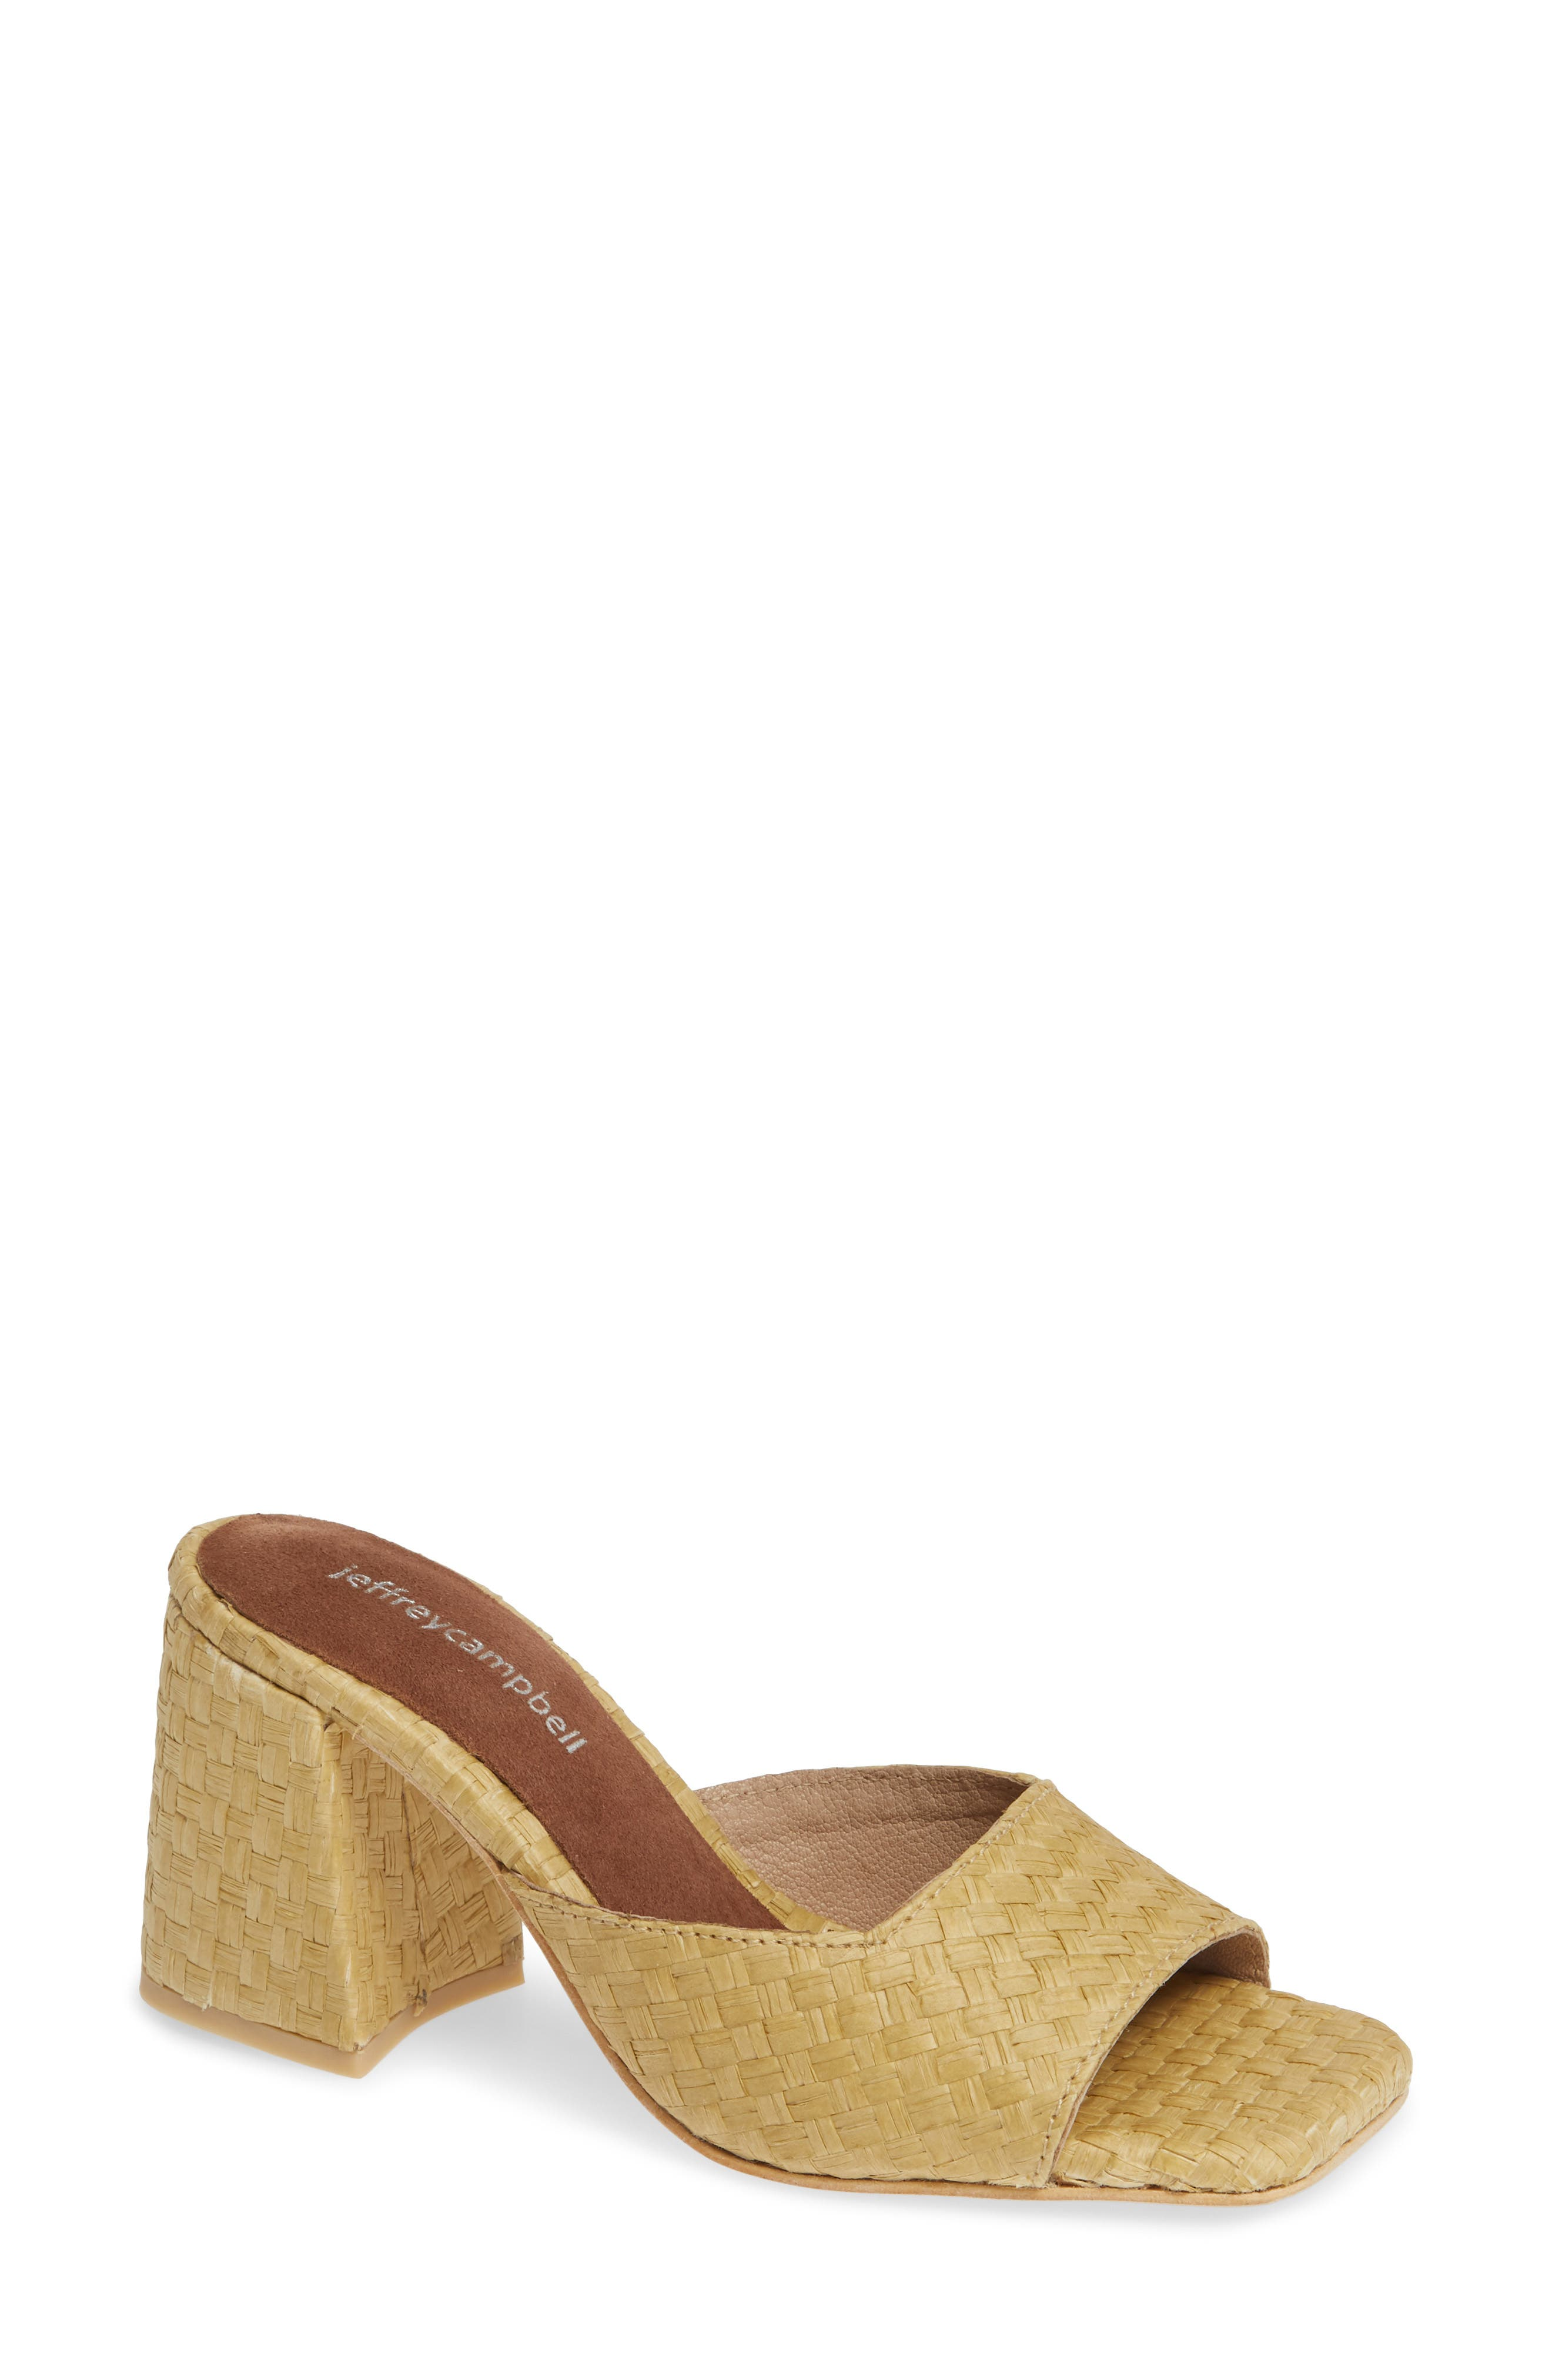 JEFFREY CAMPBELL, Mélange Raffia Slide Sandal, Main thumbnail 1, color, 200